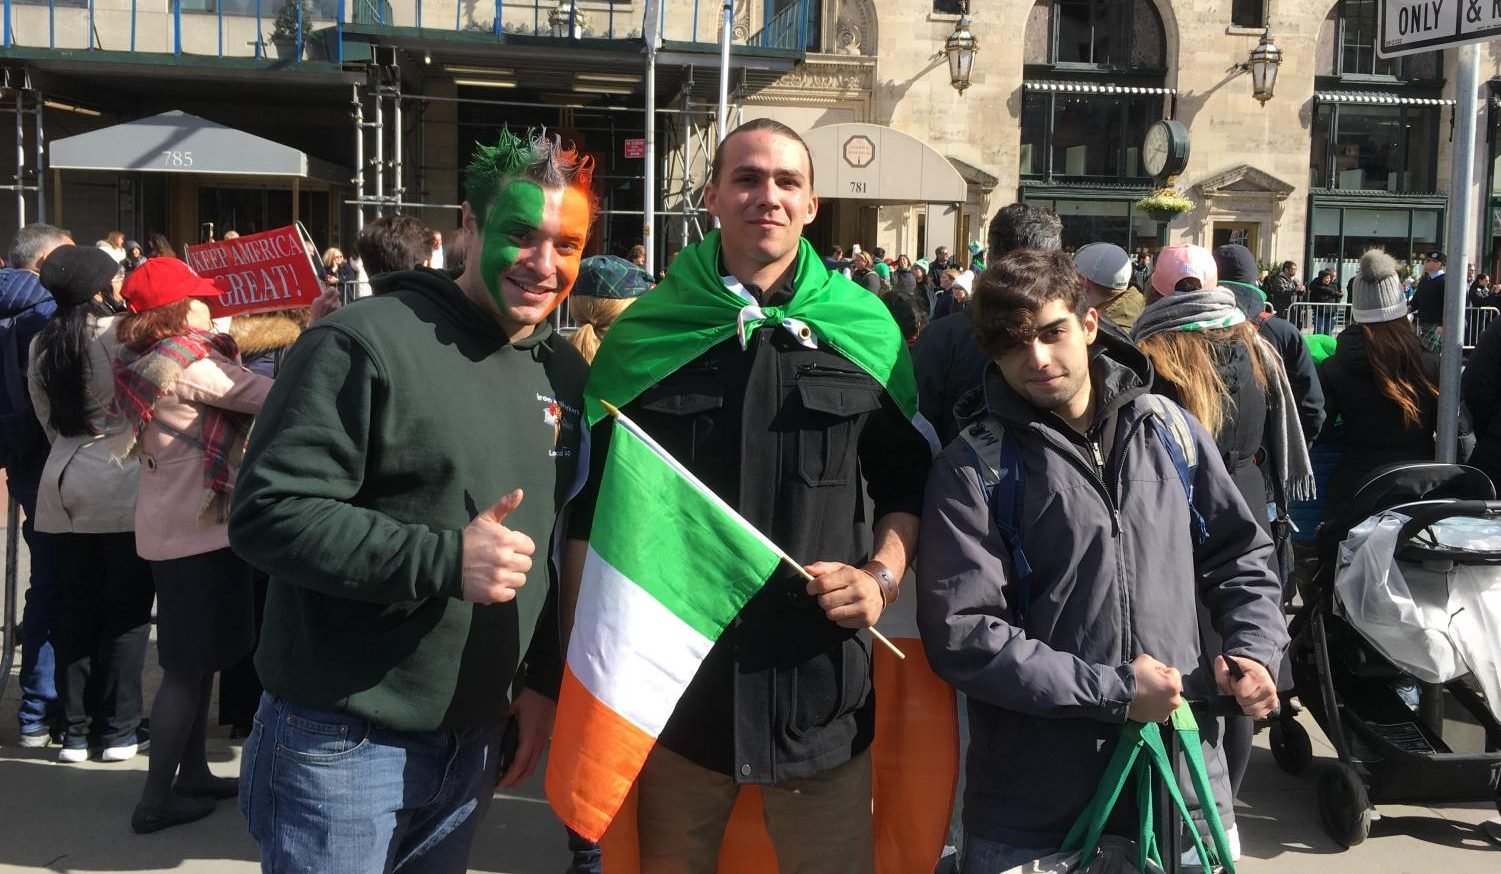 Fordham's campus may be quiet, but the city comes alive to celebrate the Irish-Catholic holiday.